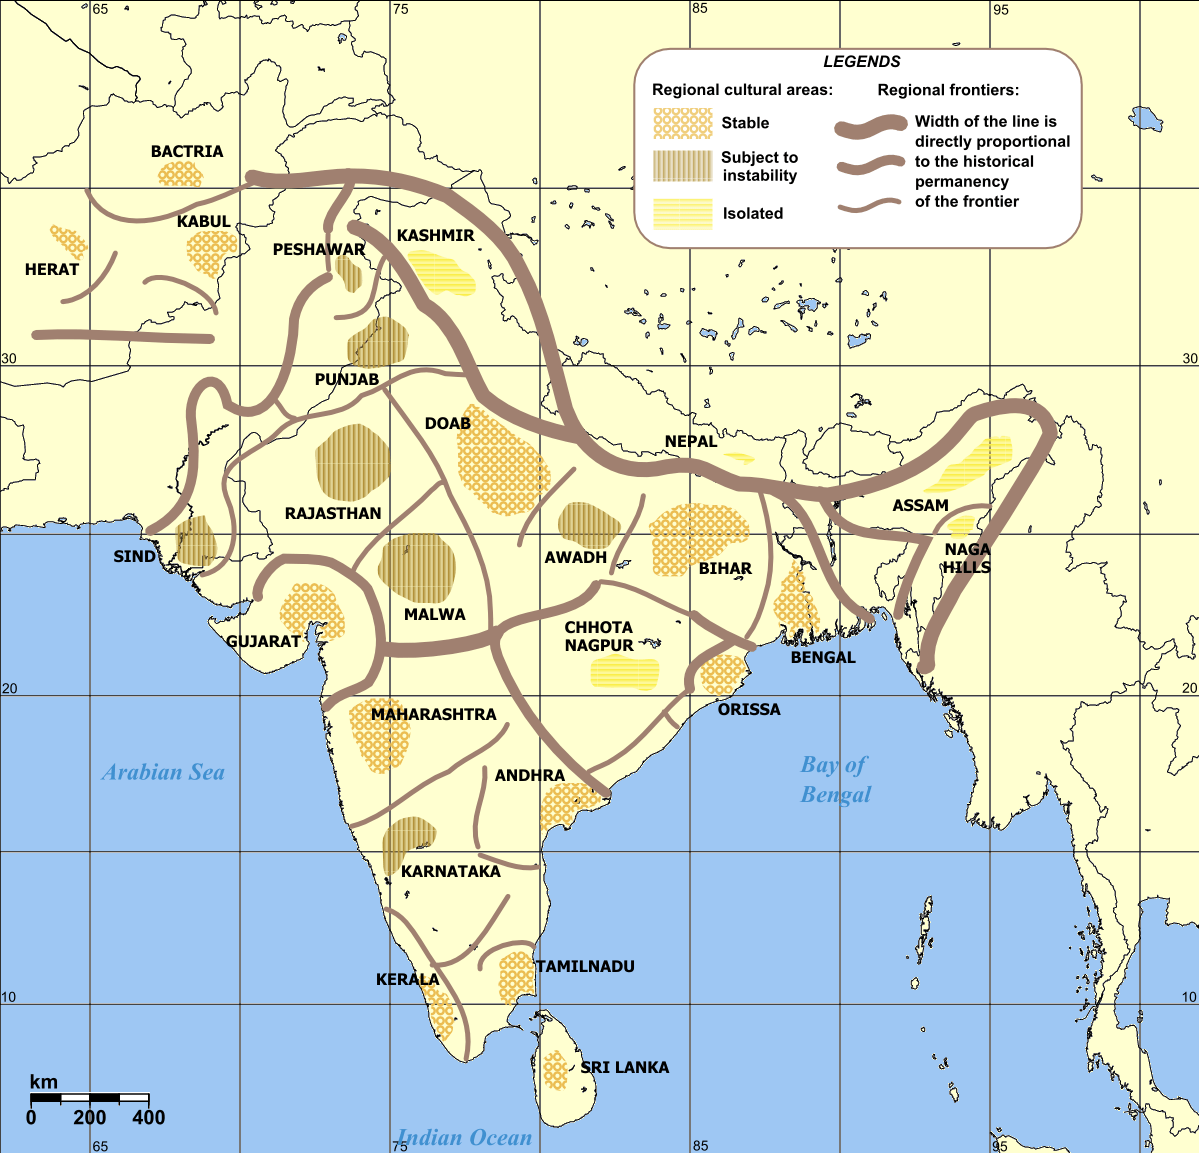 https://i0.wp.com/upload.wikimedia.org/wikipedia/commons/1/1d/Cultural_regional_areas_of_India.png